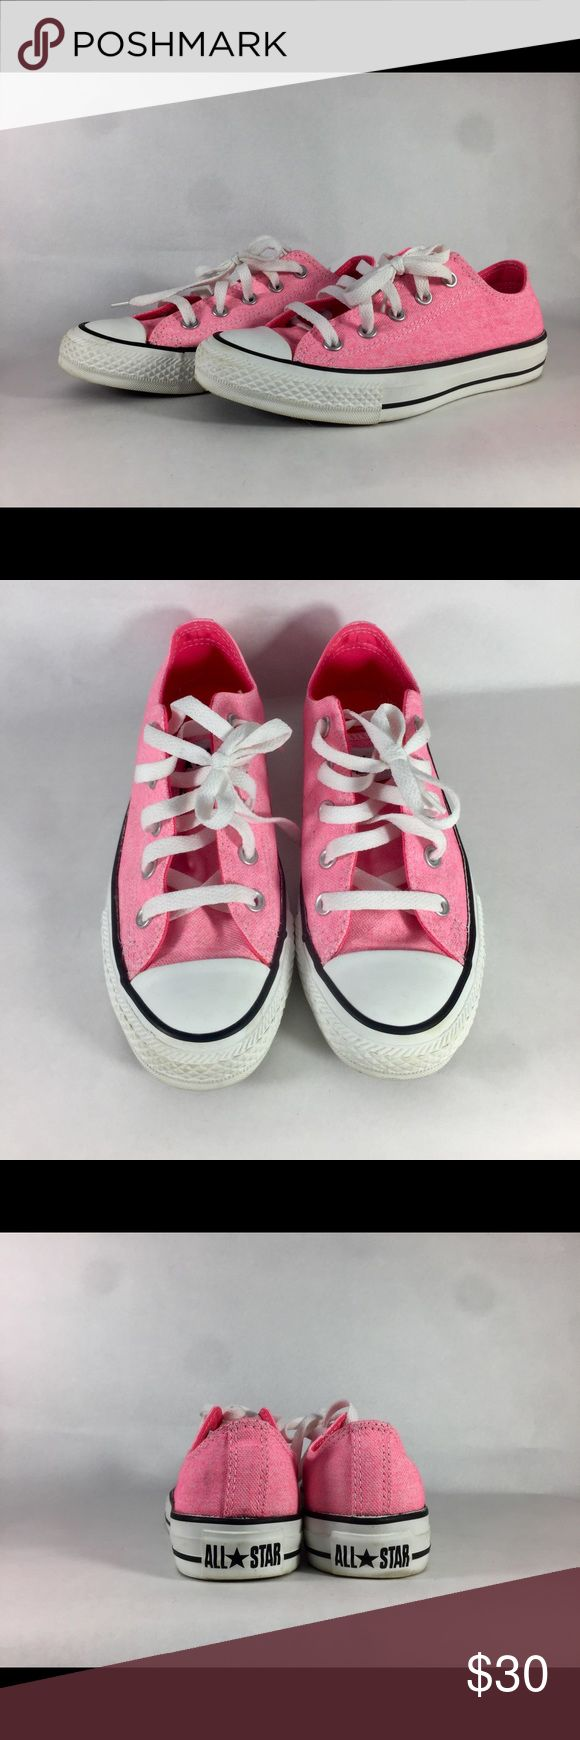 Converse Neon Pink 🎆 Low Top Sneakers Converse neon pink 🌸 classic low top sneakers 👟 Comfort and support you expect from Converse 😌 Worn once or twice, easy to clean 🏃♀️ Color pops 🎆 looks great in black light. Treat yo self. Converse Shoes Sneakers